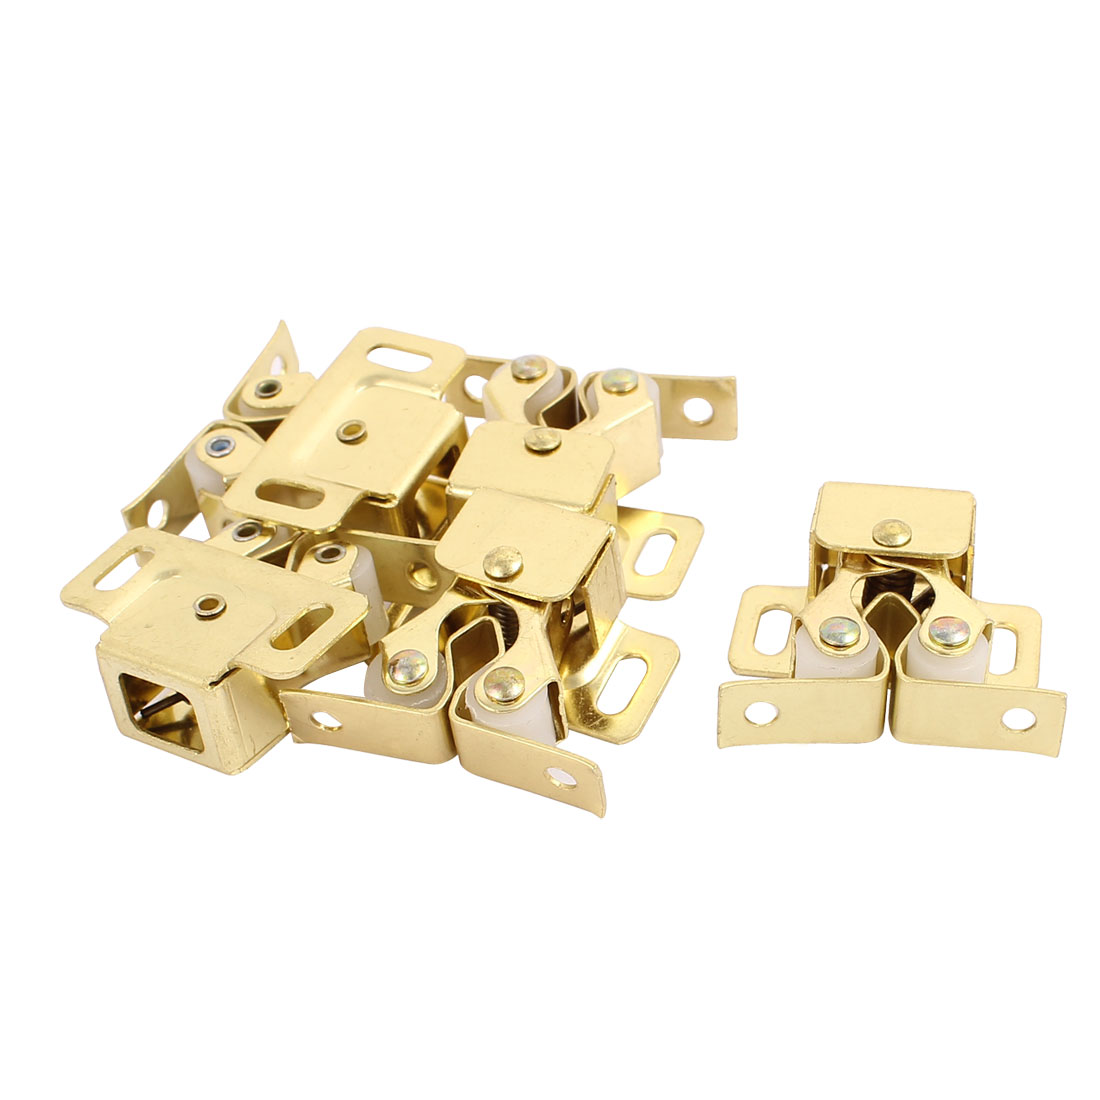 Cupboard Closet Cabinet Door Double Ball Roller Catch Latch 32 x 30 x 15mm Gold Tone 5pcs